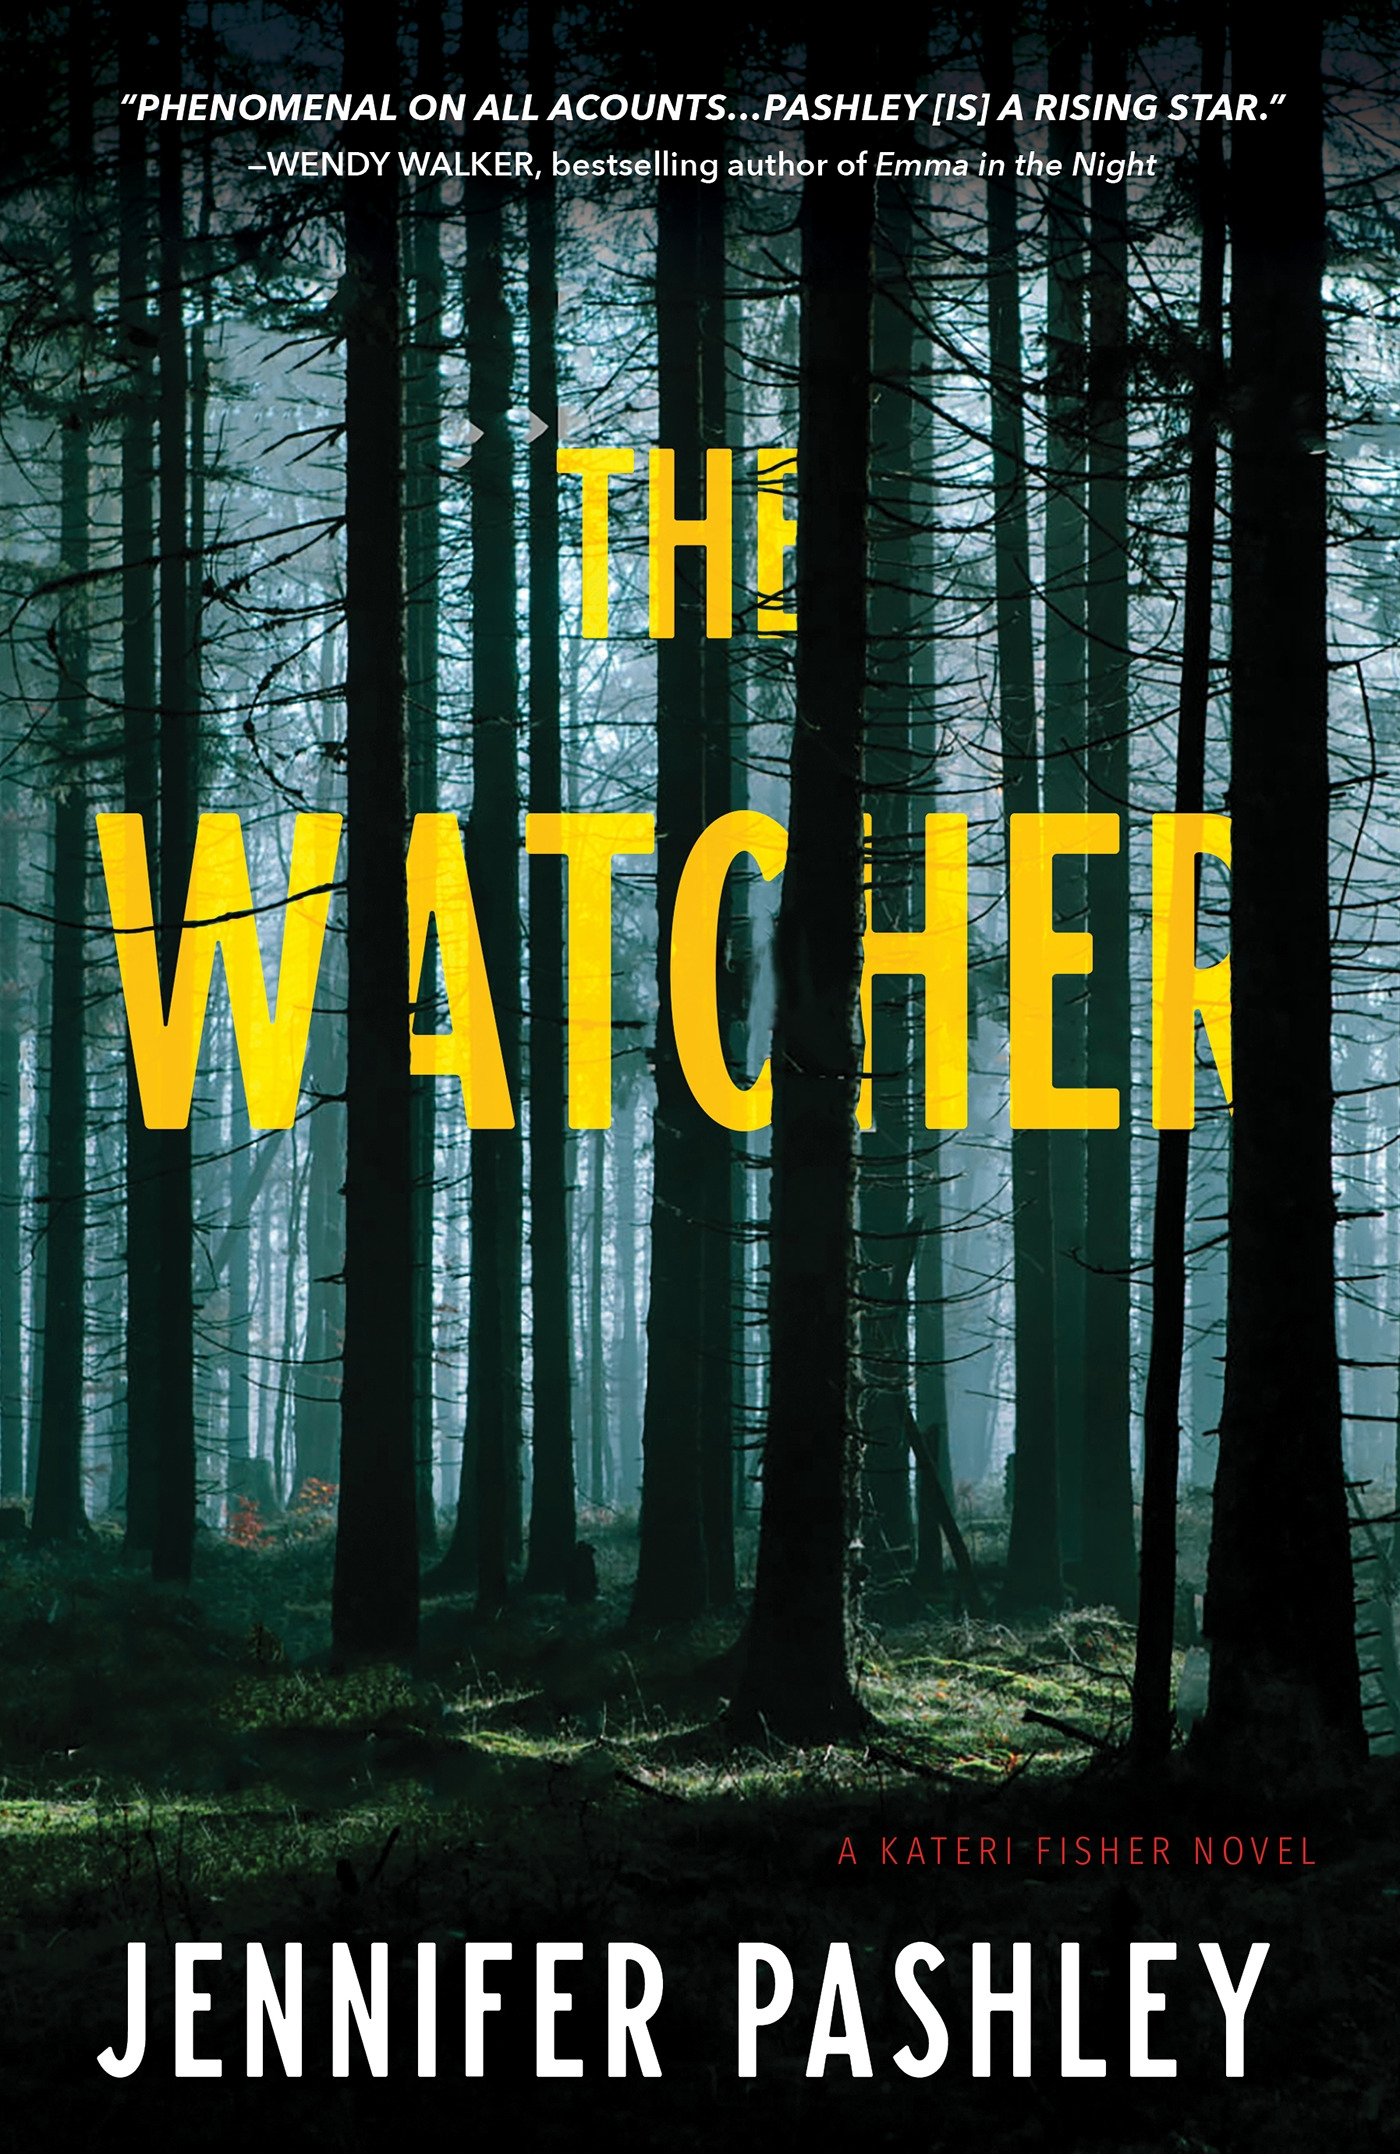 The Watcher: A Novel (A Kateri Fisher Novel Book 1)